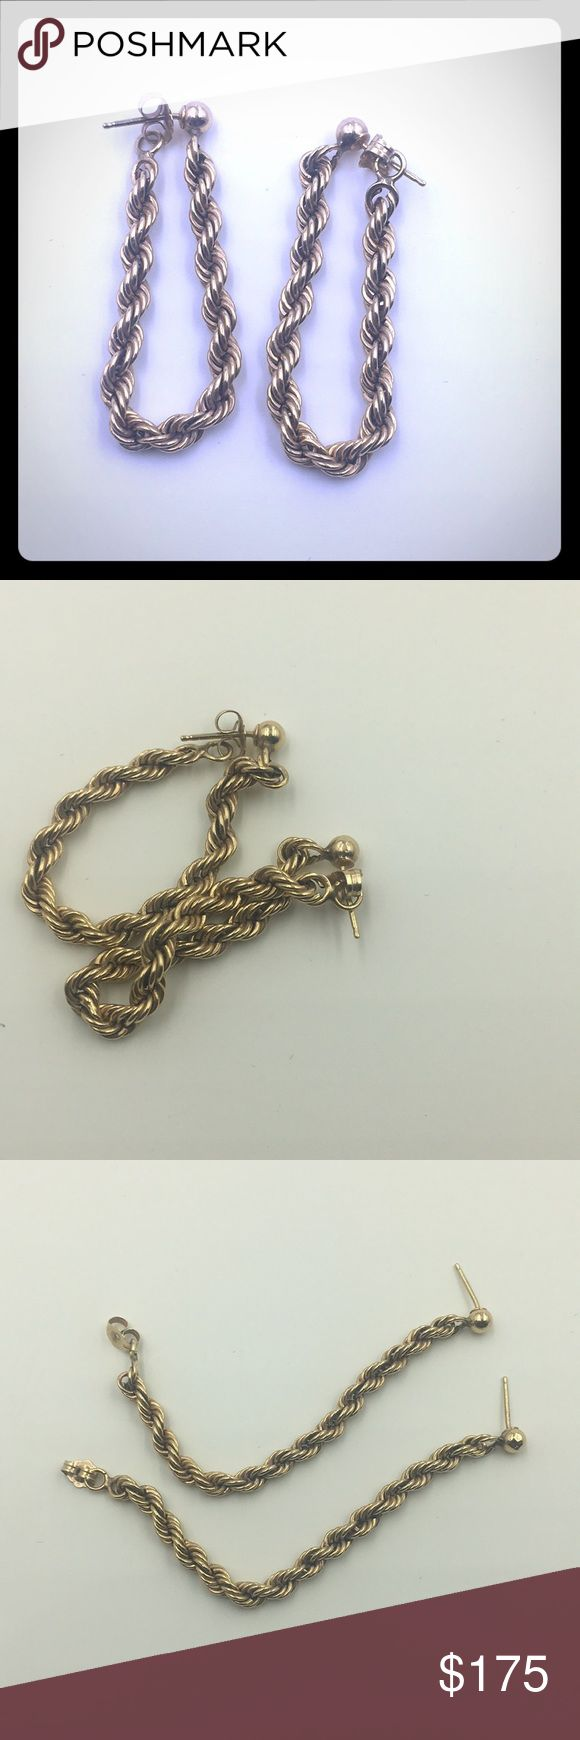 14k gold rope chain loop earrings Unusual! 14k Gold rope earrings.   Posts go in through the front close in back making the full loop.  Earrings are acid tested 14k gold and are guaranteed.  The earrings weigh 3.5 grams! Gold Jewelry Earrings